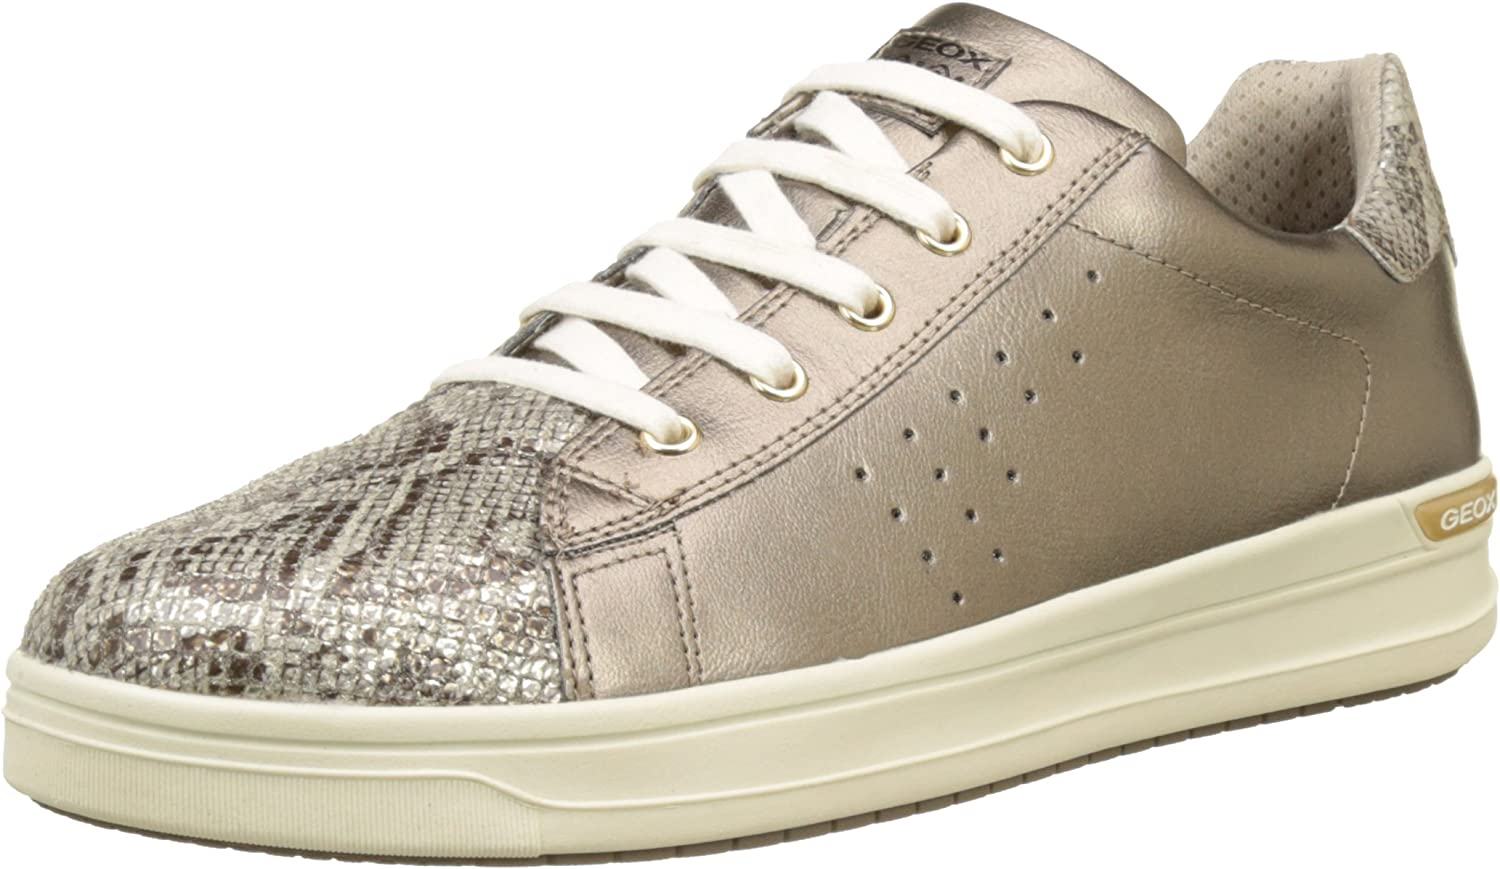 Geox Unisex Adults' J Aveup Girl a Trainers